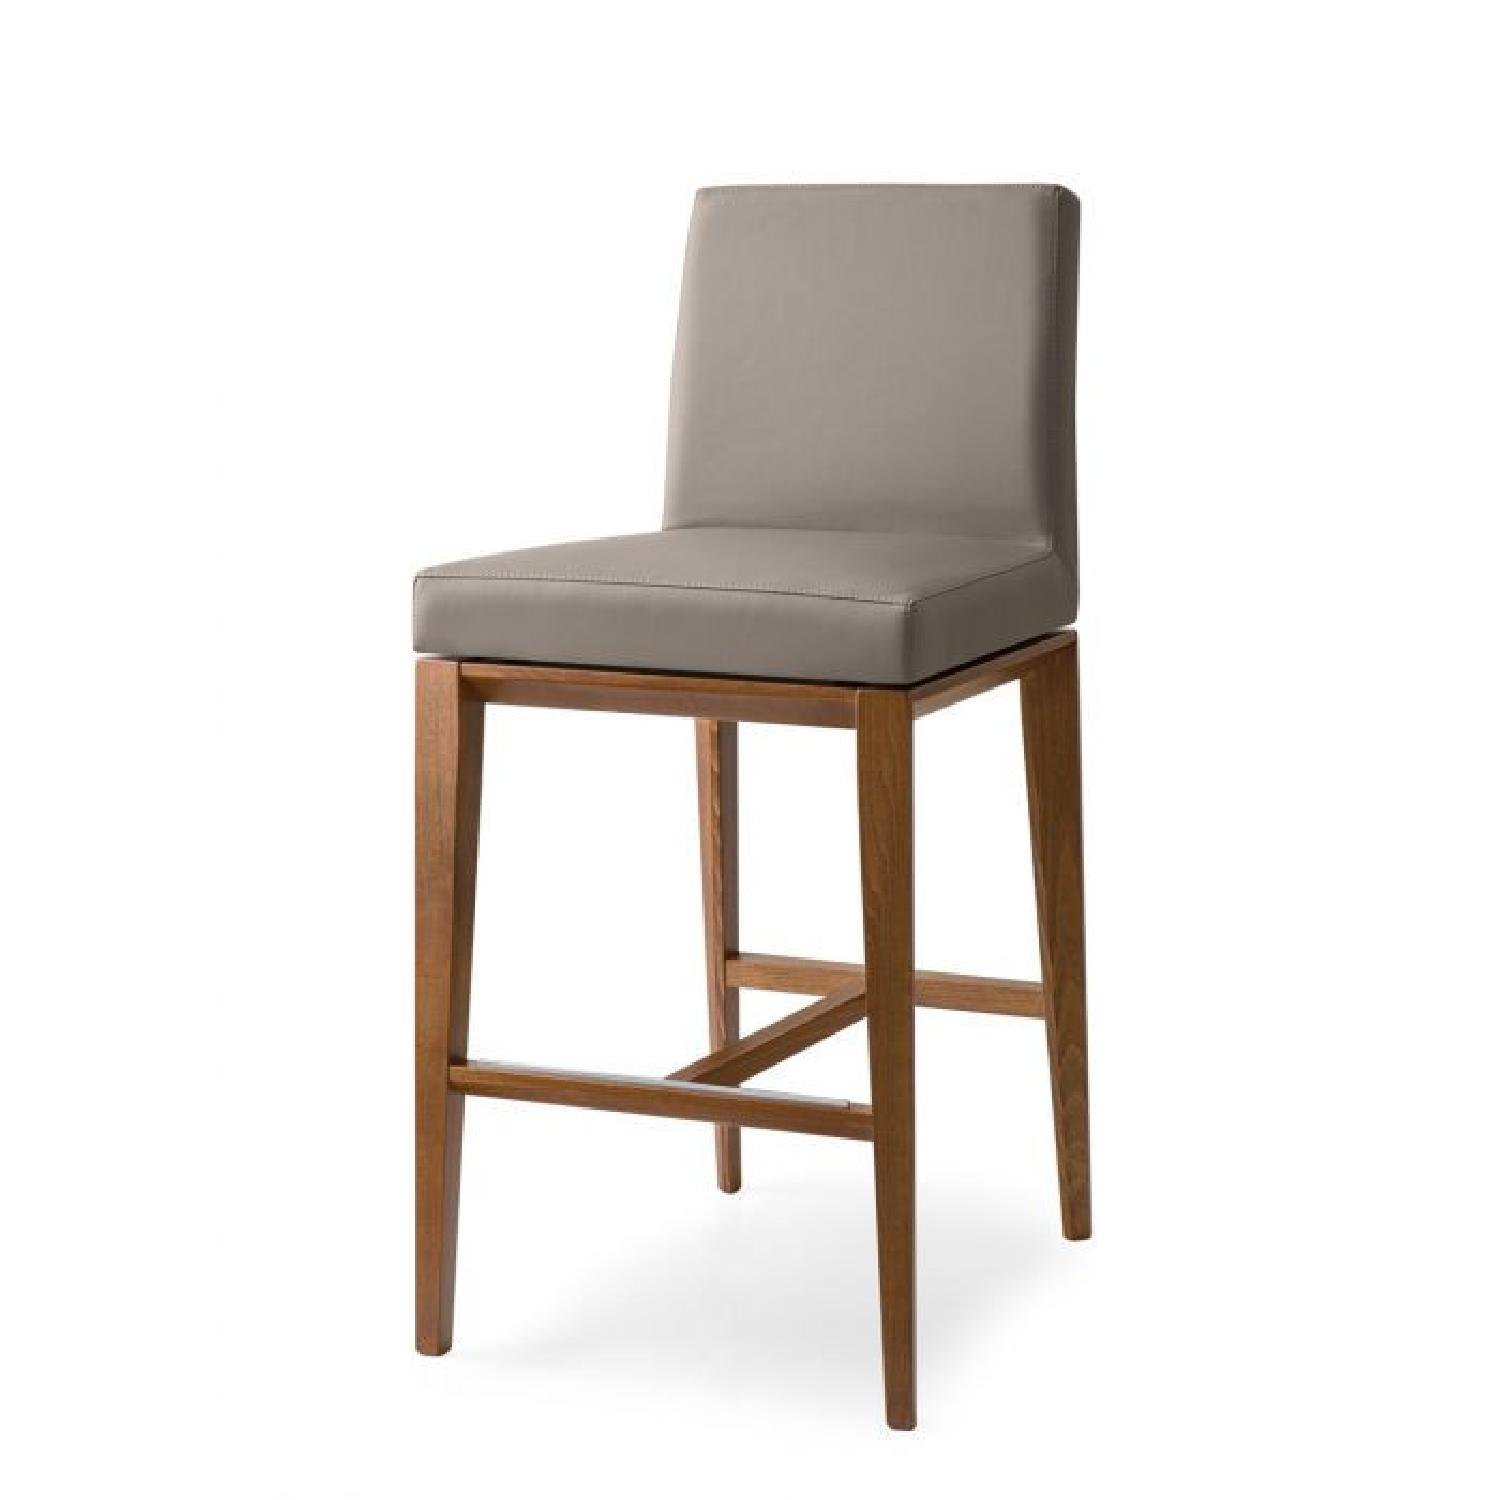 Calligaris Bess Barstools -Taupe Leather - image-5